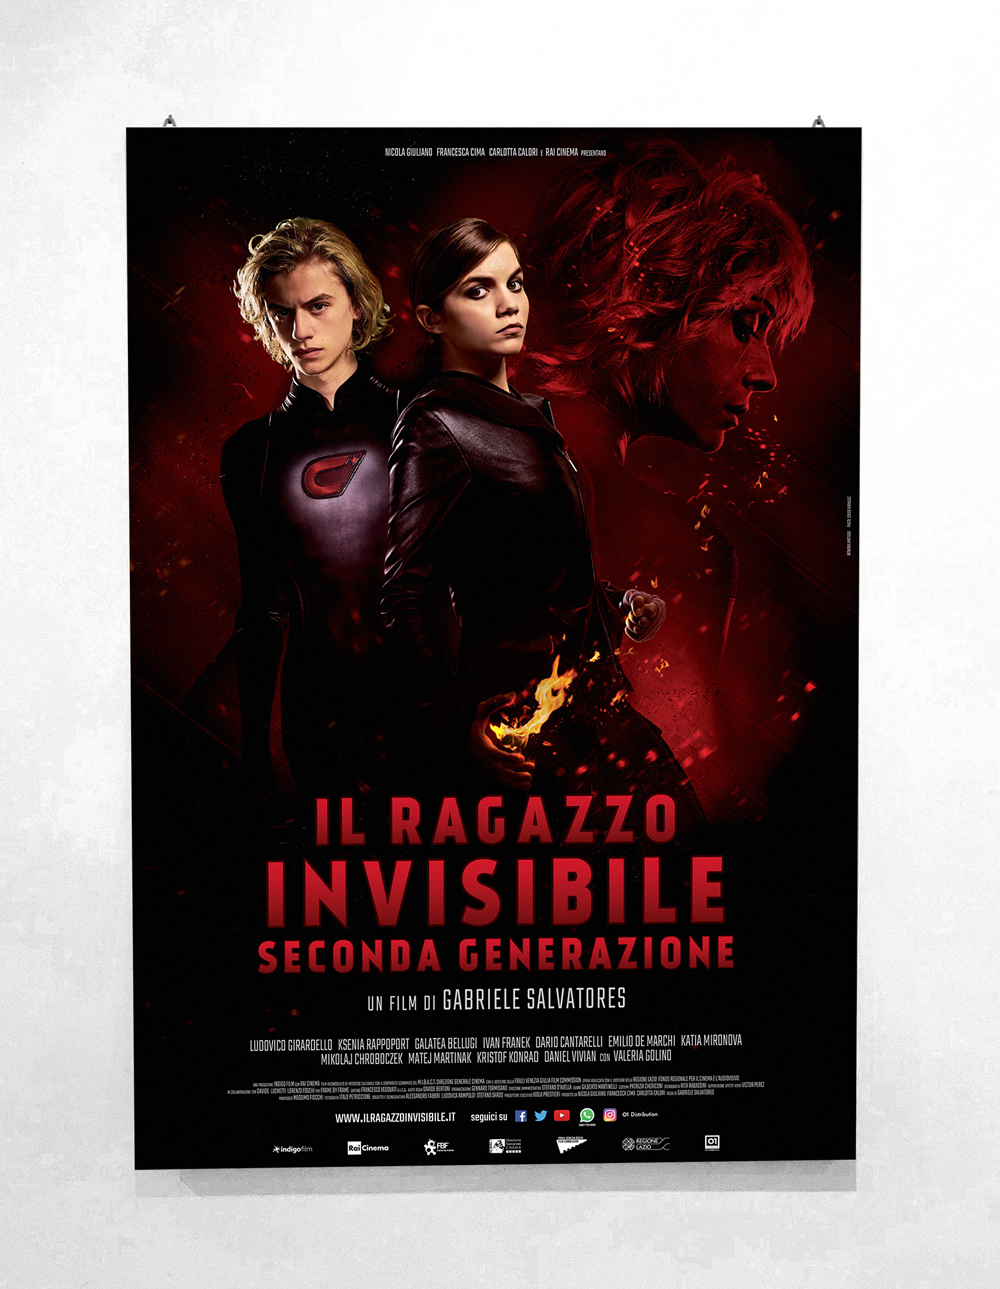 Il Ragazzo Invisibile 2 - Directed by Gabriele Salvatores - Official Poster